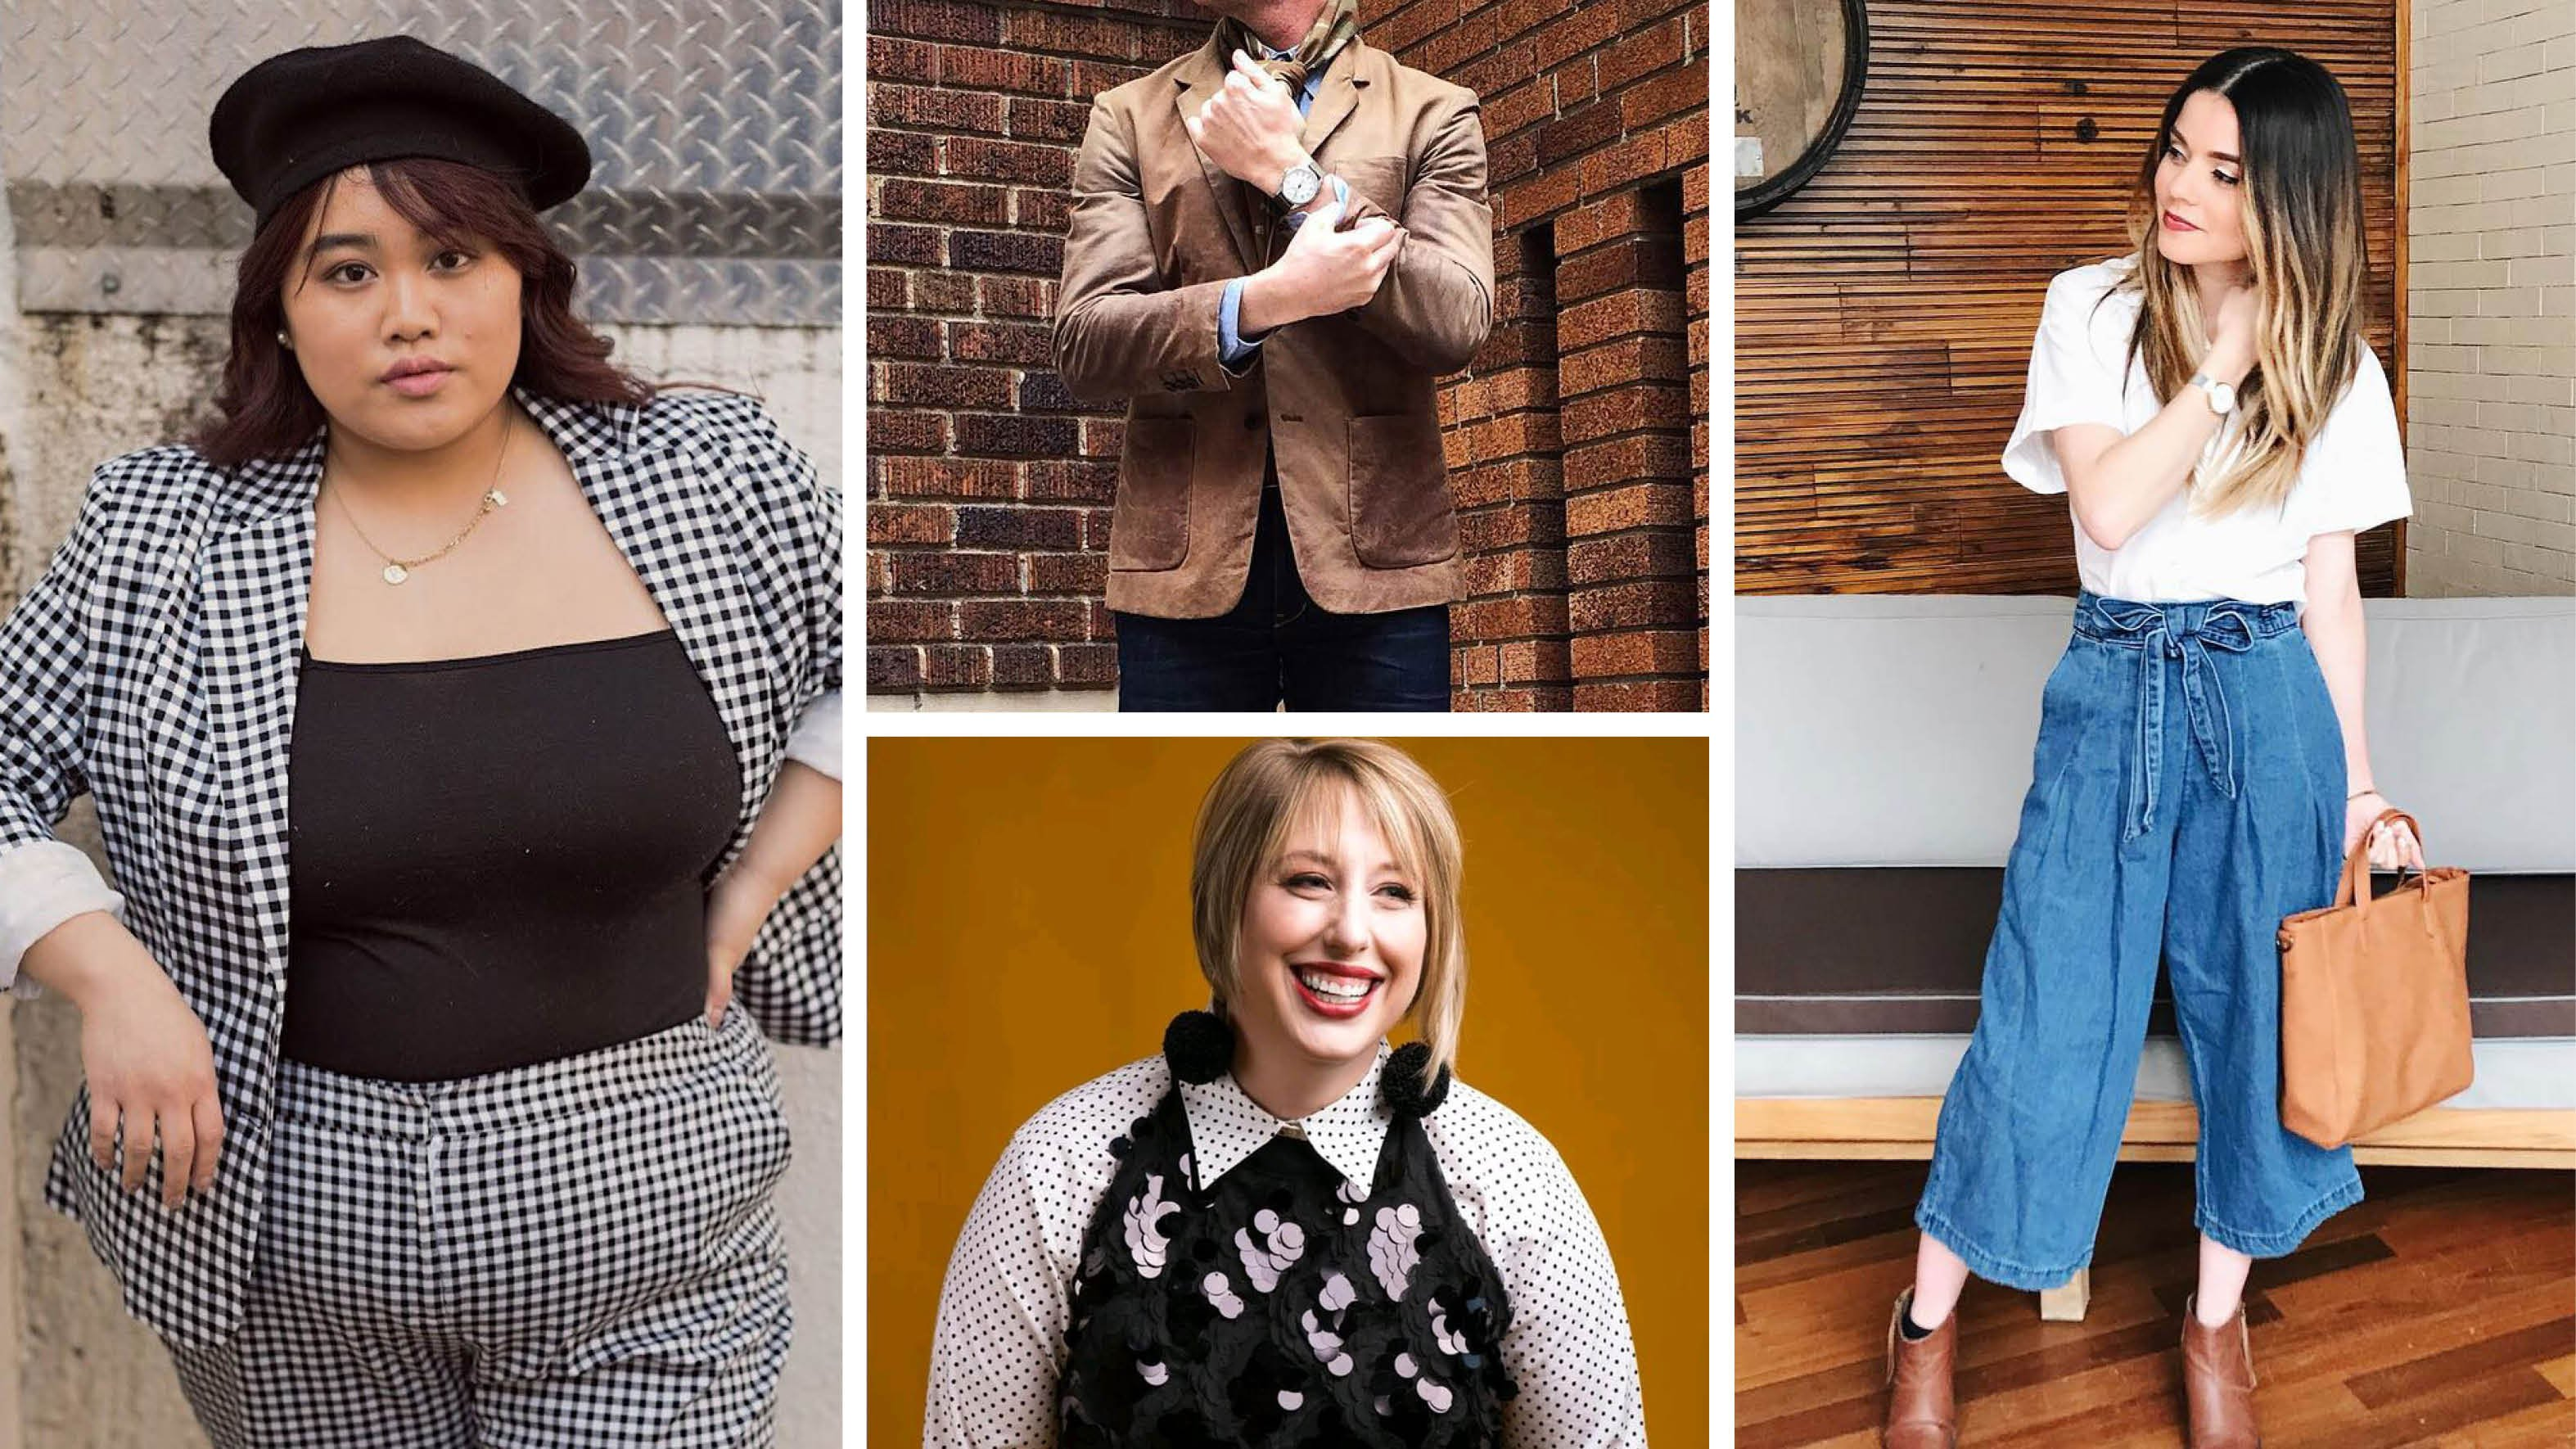 6a047ca4ad Spring Fashion Tips from Local Instagrammers - Mpls.St.Paul Magazine